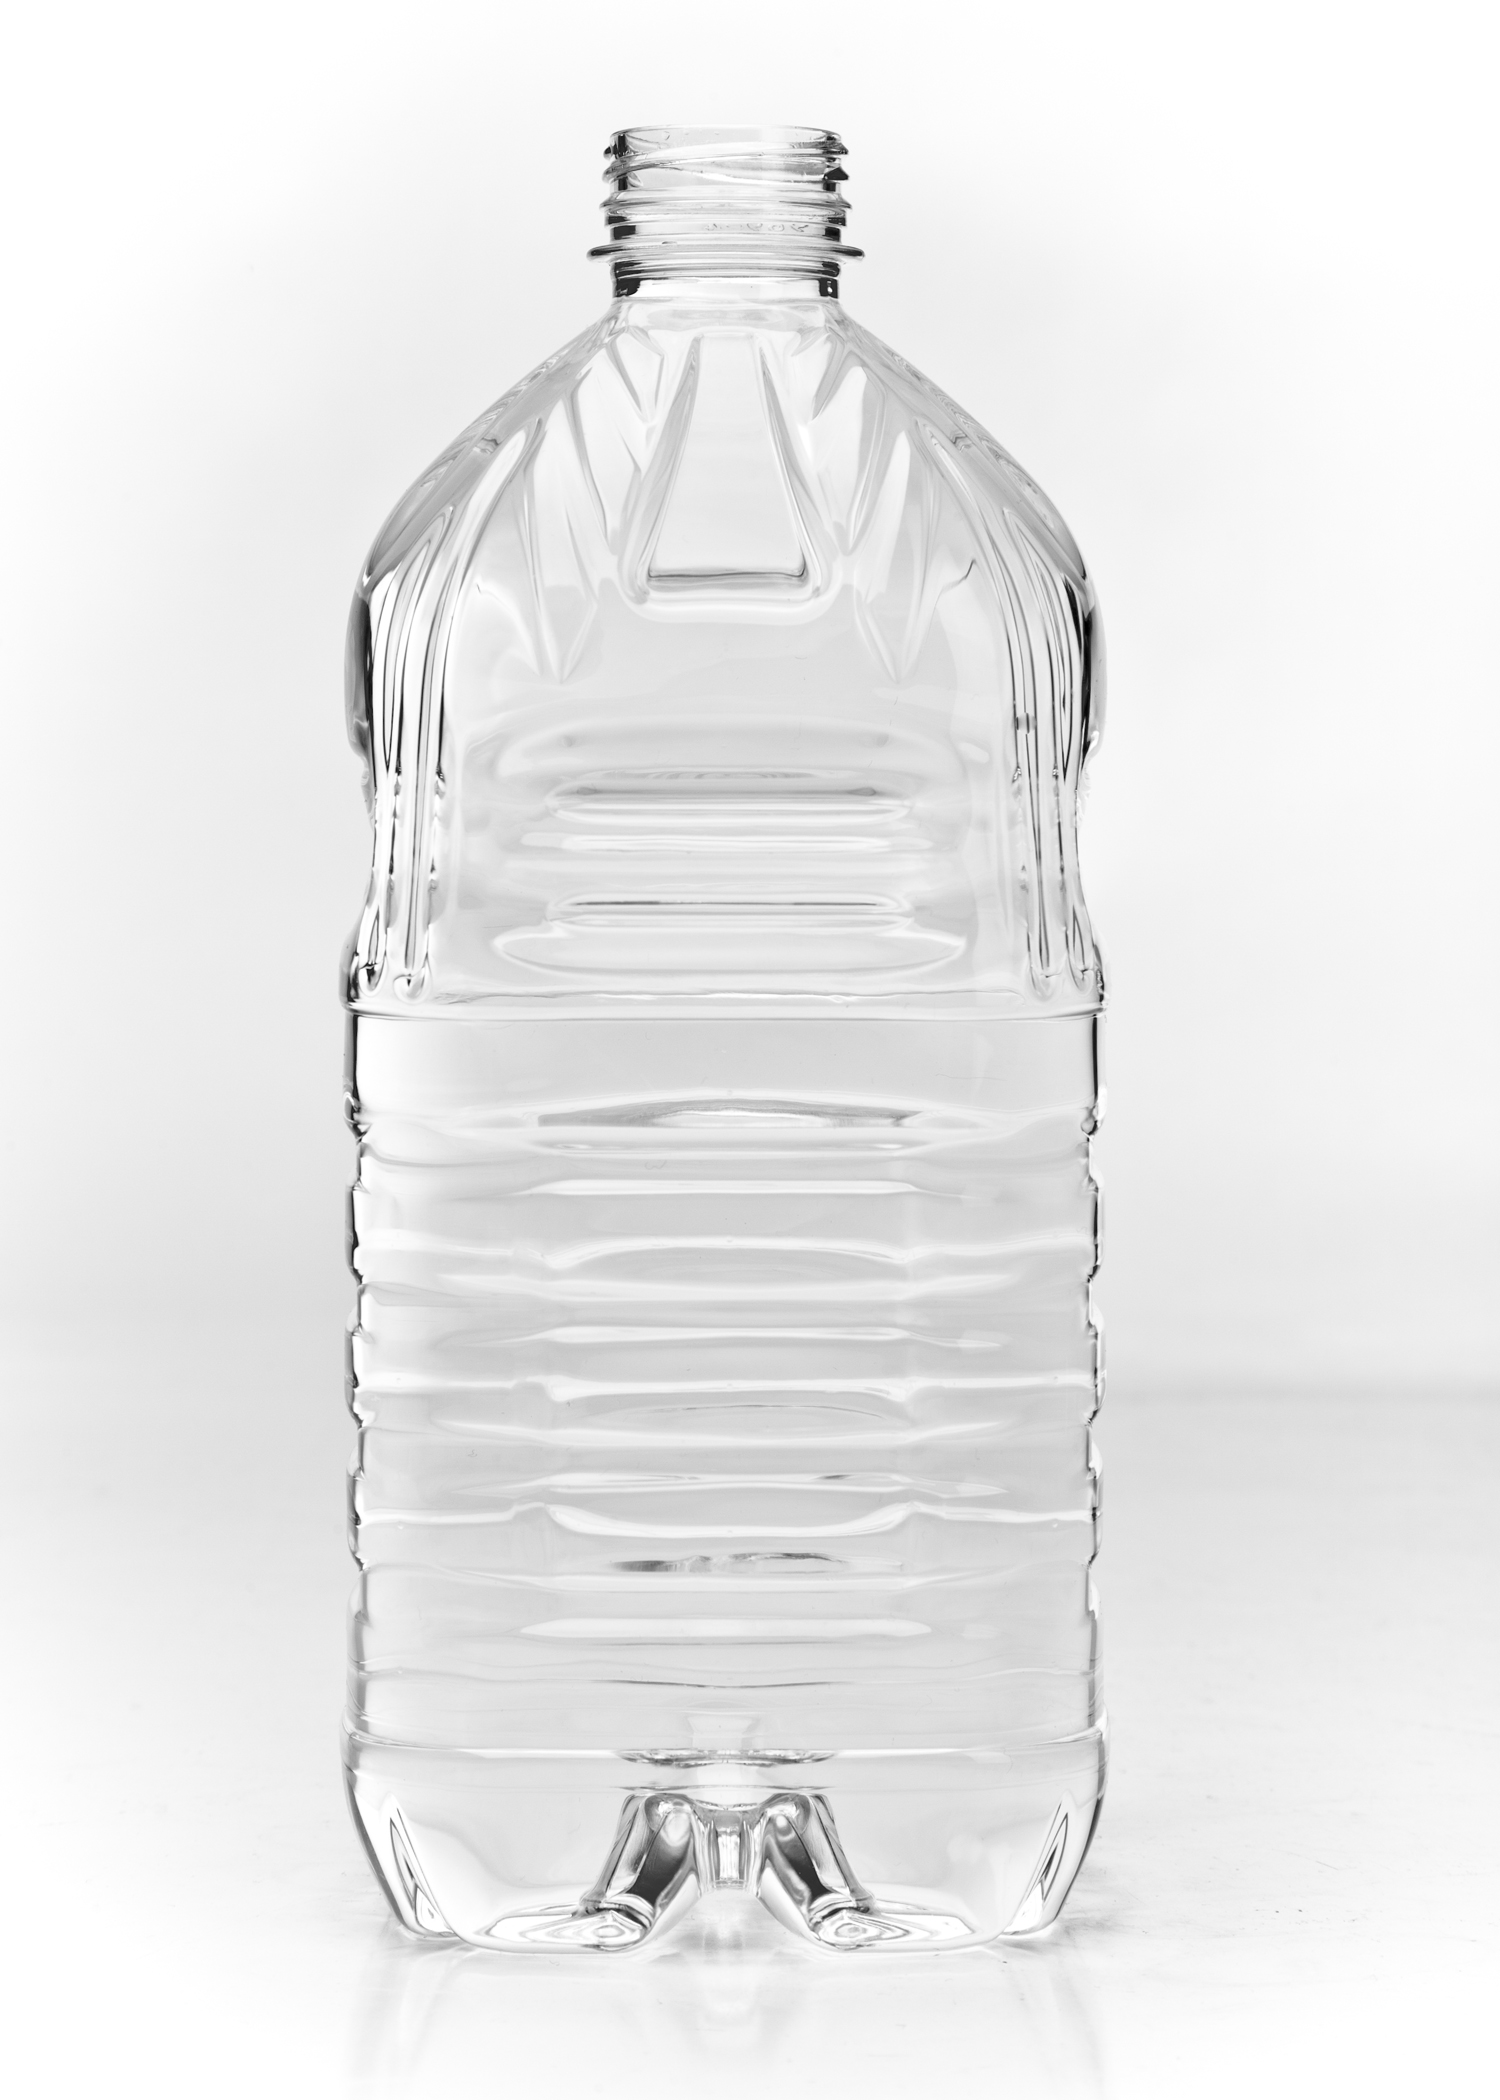 64oz lightweight bottle_MG_7360